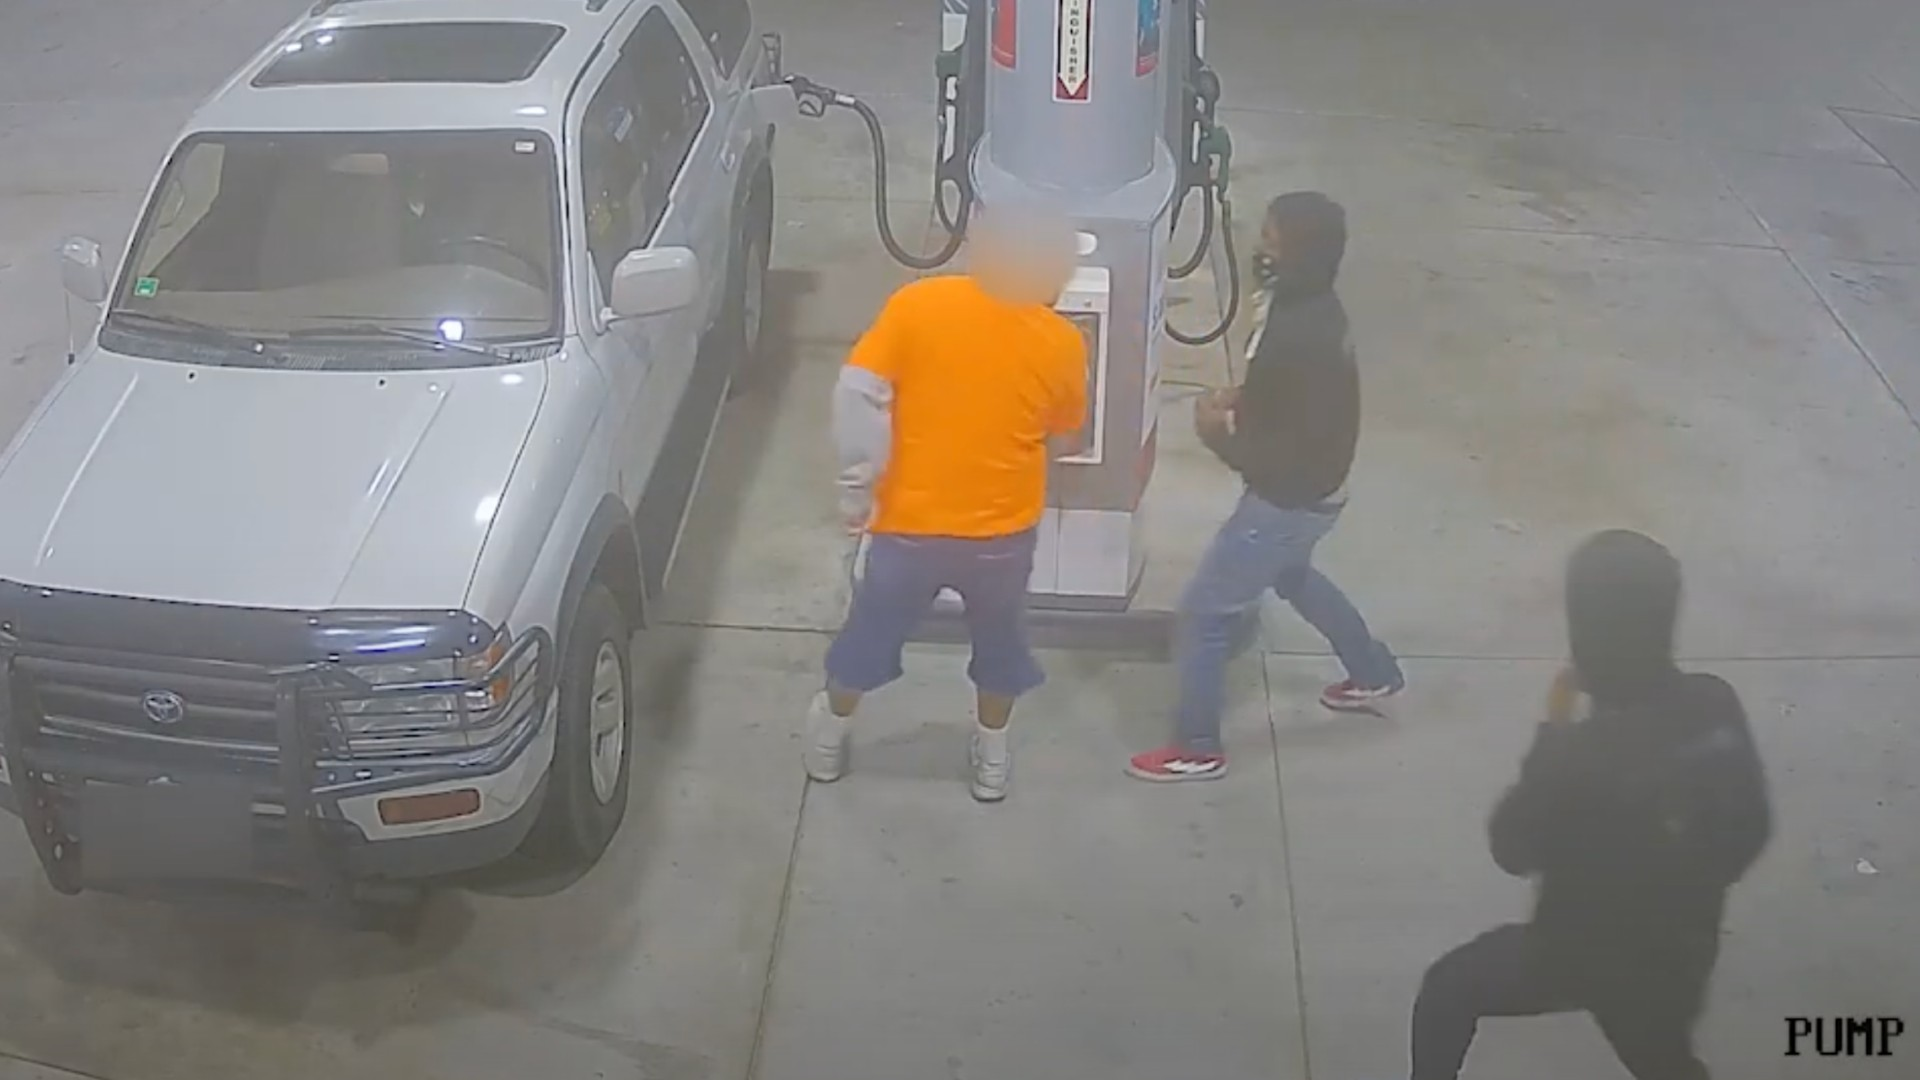 Security cameras captured a carjacking at a Chevron station in Victorville on Nov. 12, 2020, in footage released by the San Bernardino County Sheriff's Department.